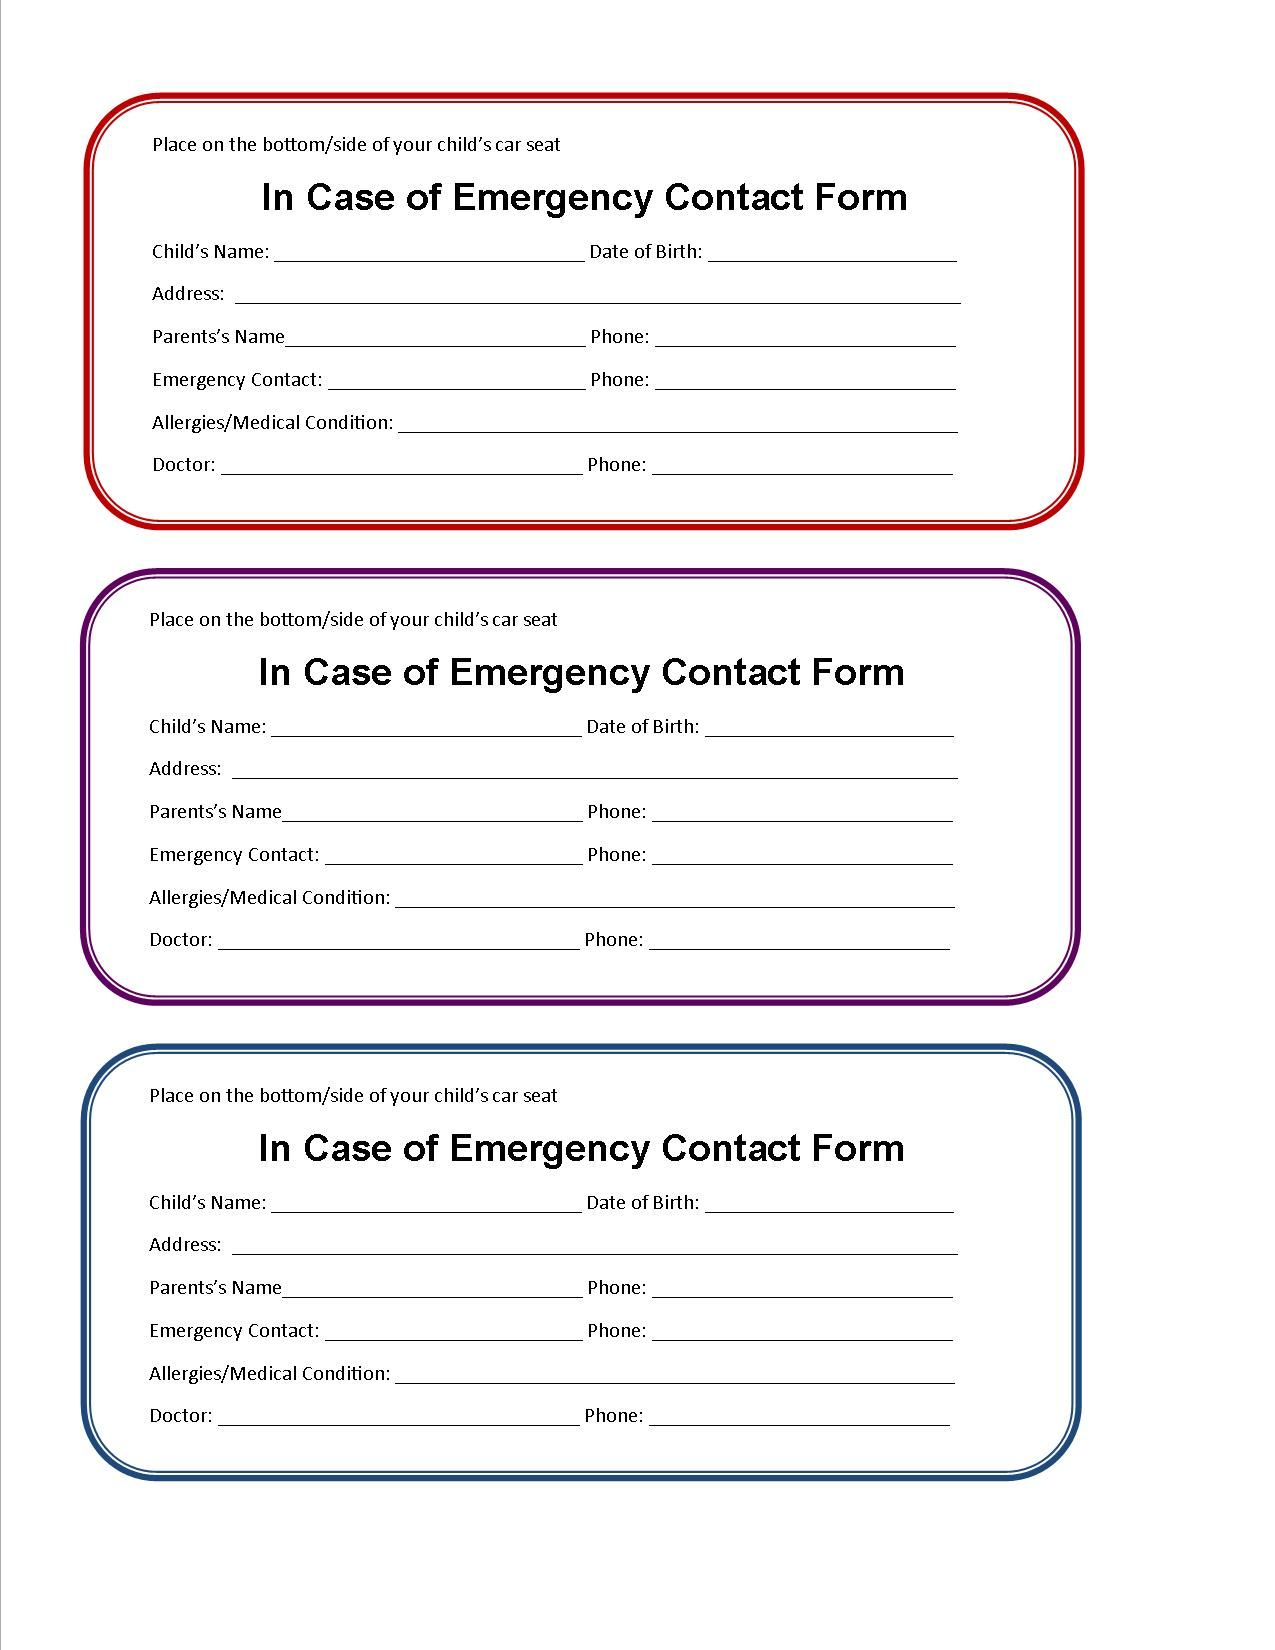 Printable Emergency Contact Form For Car Seat | Super Mom I Inside Emergency Contact Card Template